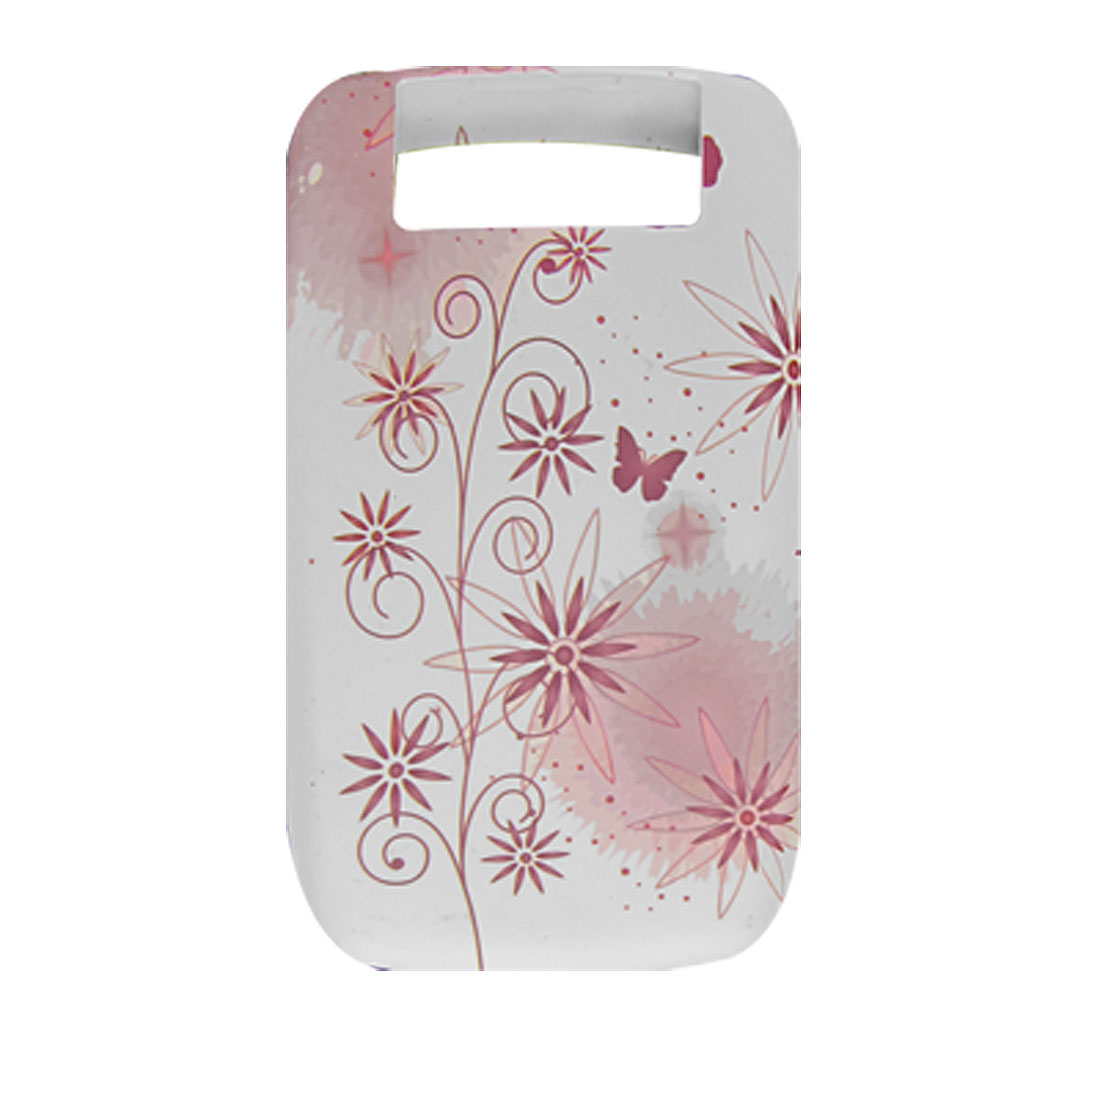 Dandelion Butterfly Pattern Soft Plastic White Case for BlackBerry 8900